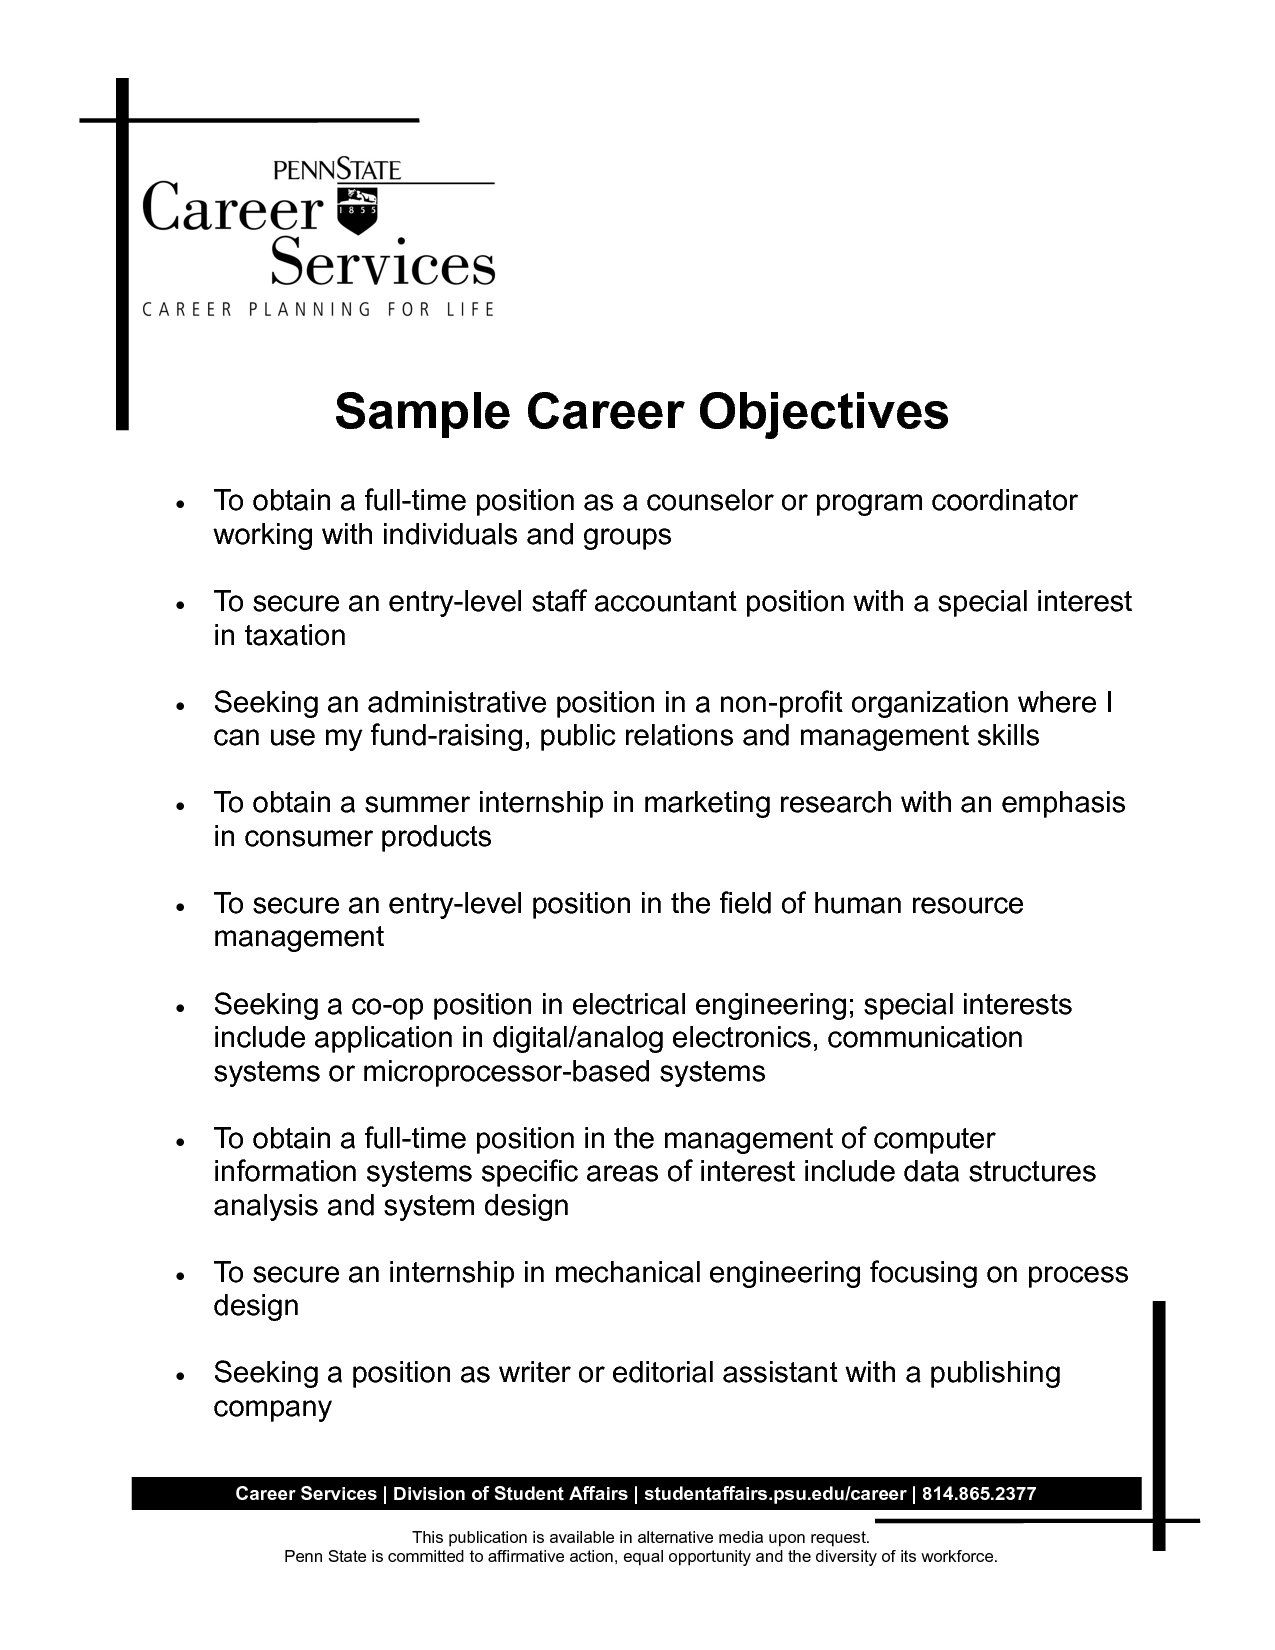 Good Objective Statement For Resume Examples How To Write Career Objective With Sample